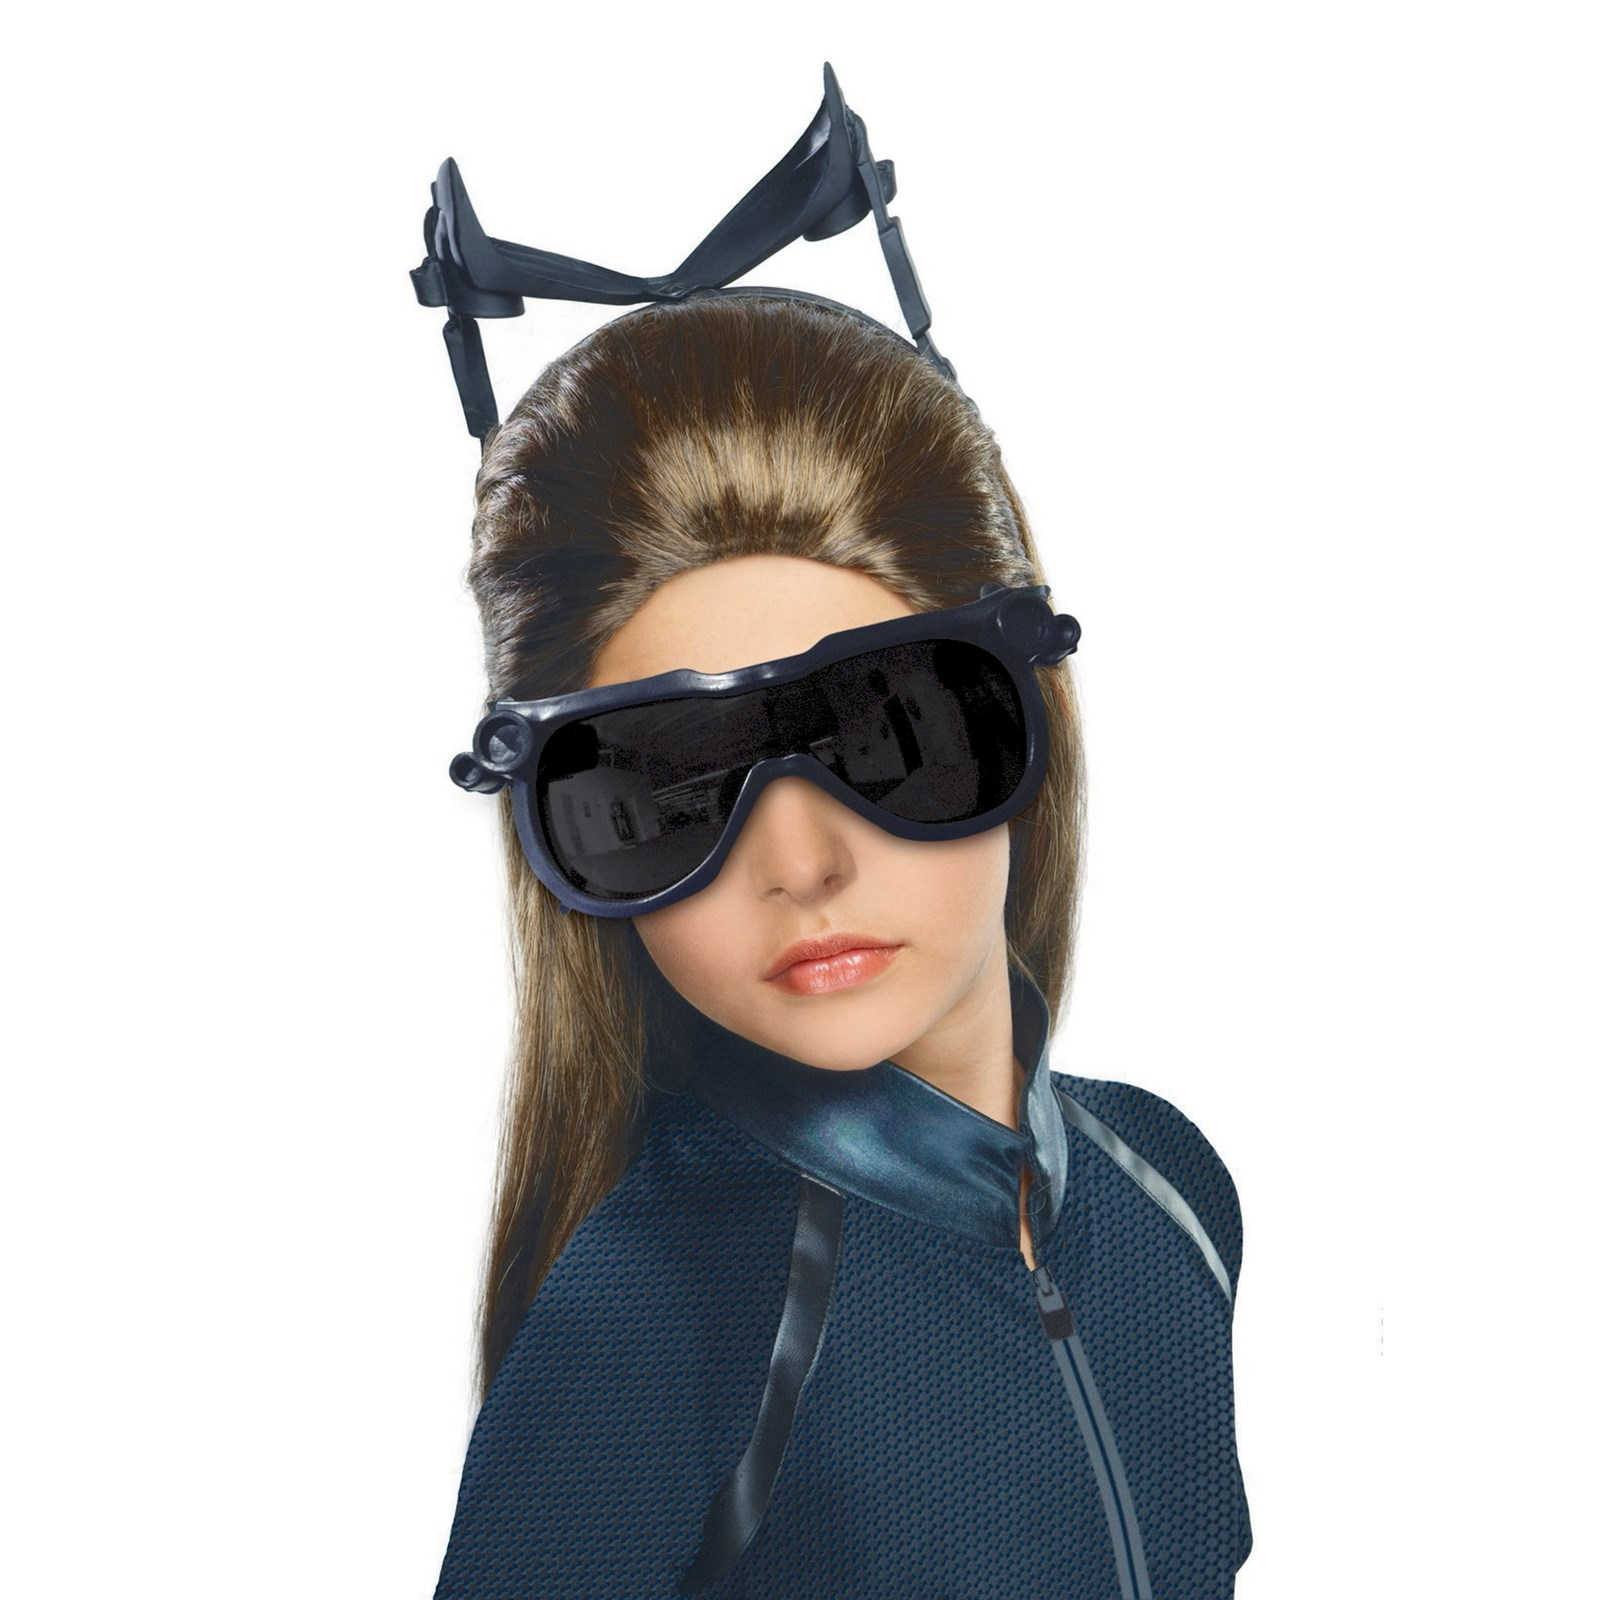 Girls Batman The Dark Knight Rises Catwoman Wig